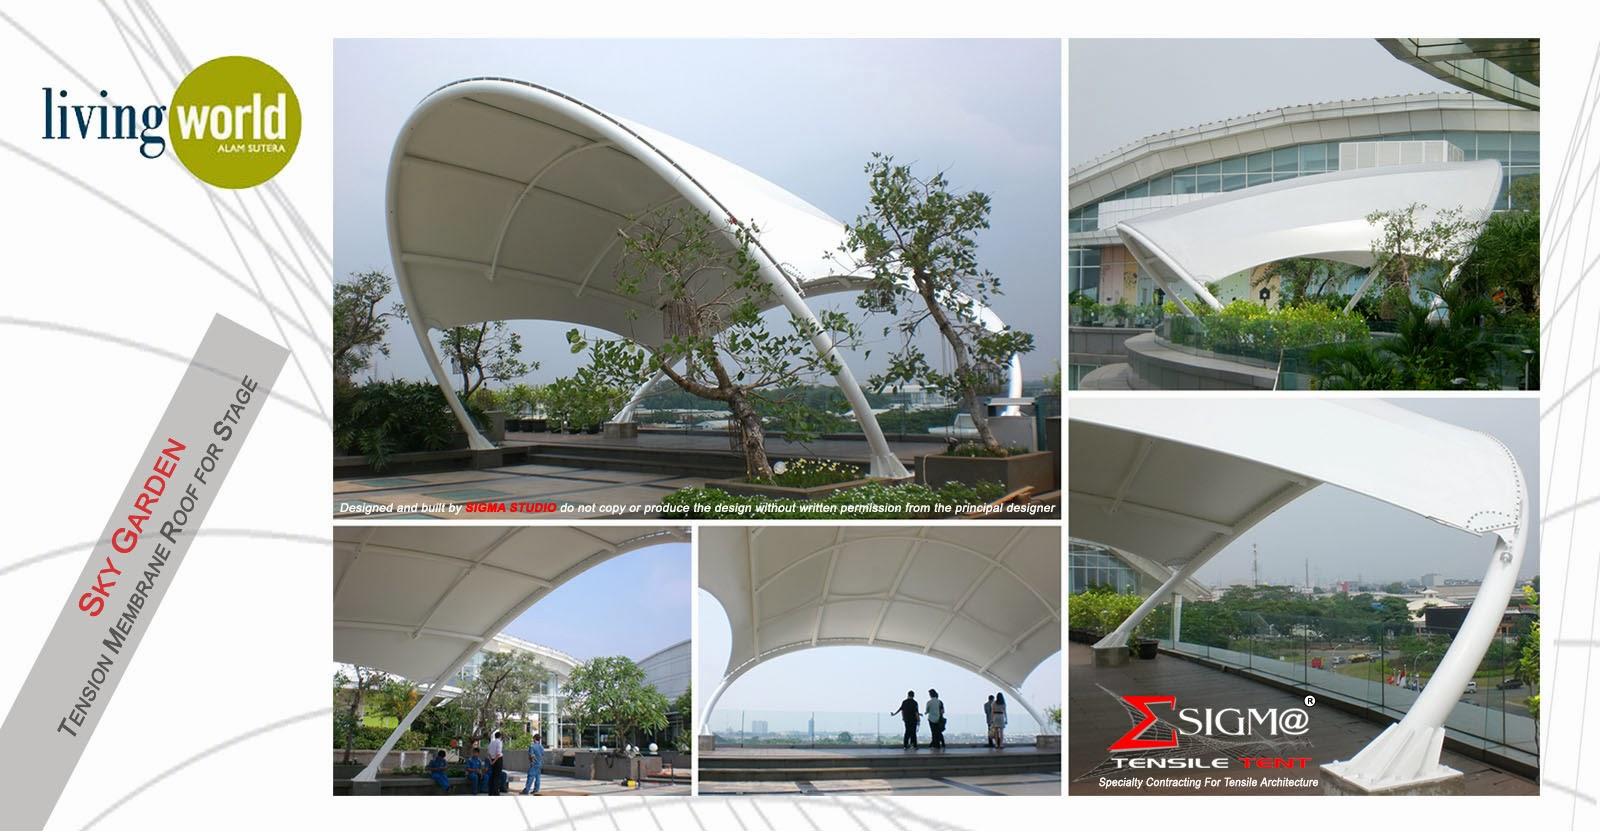 SIGMA Tensile Tent: Living World Sky Garden - Tension ...